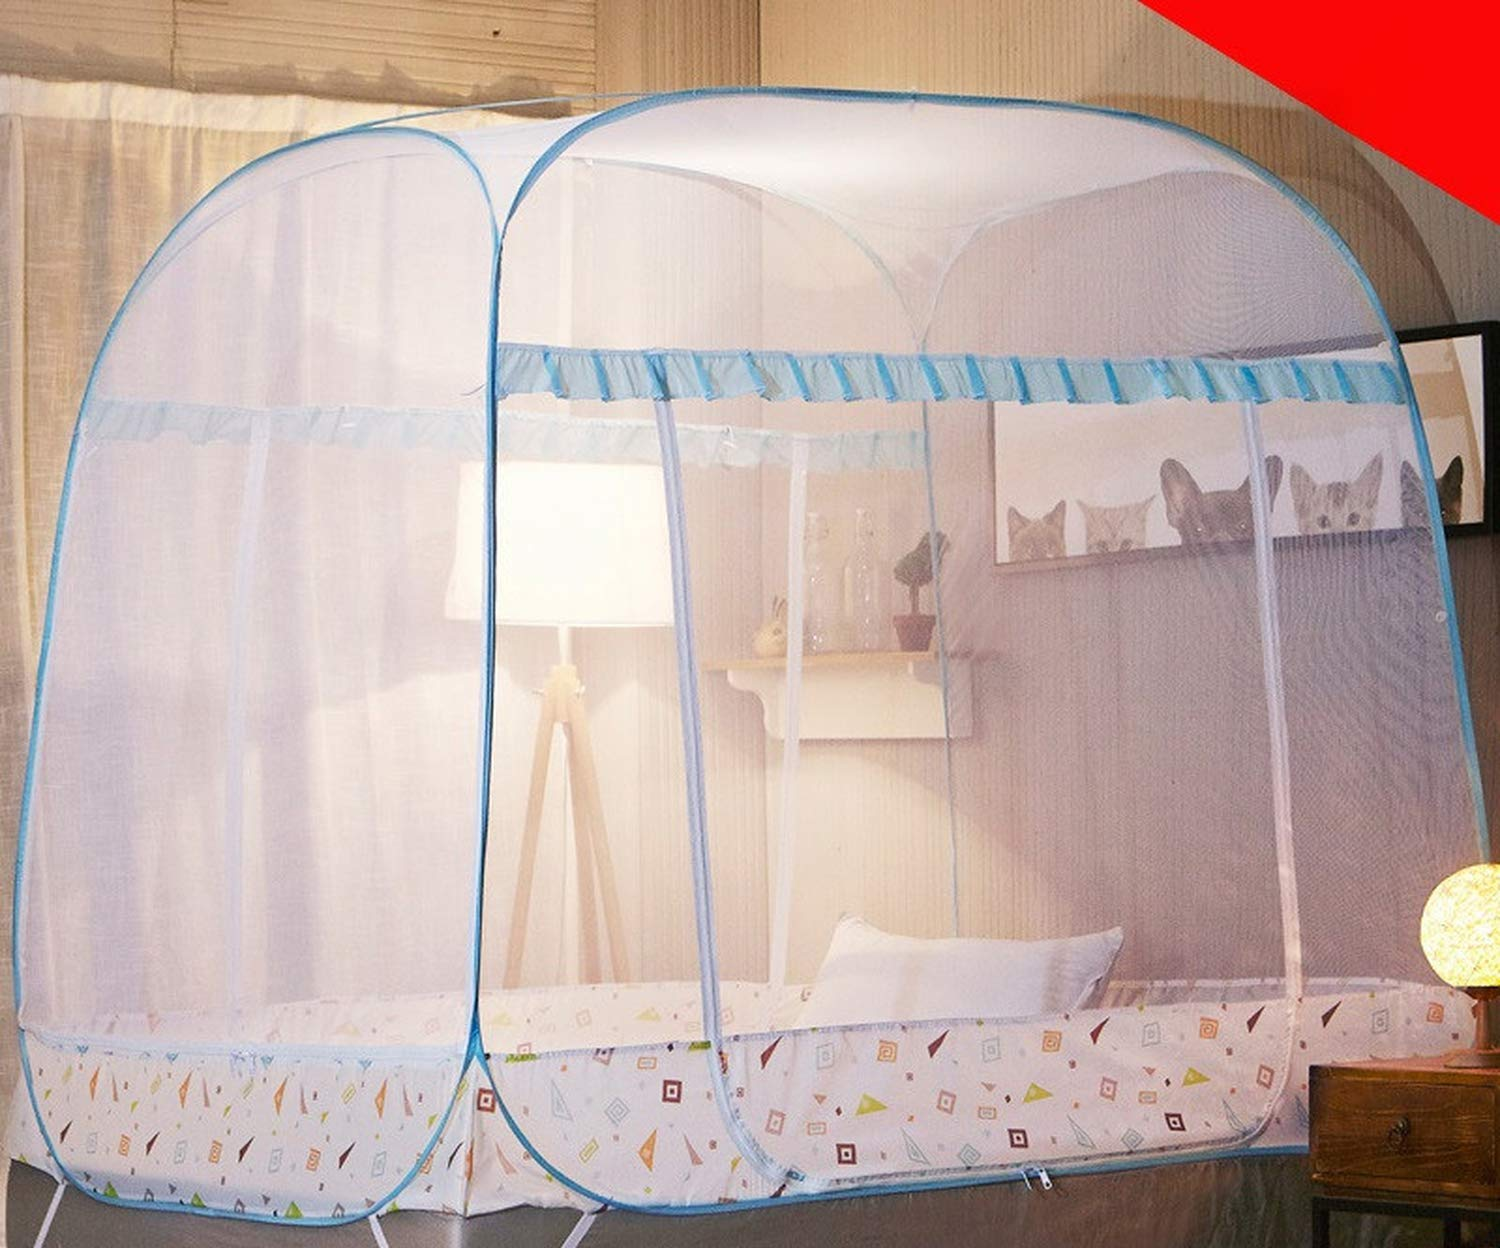 Romantic Elegant Mosquito Net for Home Decor 1.5 1.8m Double Bed Net Princess Bed Mosquito Net Tent Mesh Netting,Green Full-Bottom,1.8m (6 feet) Bed by SuWuan mosquito net (Image #5)